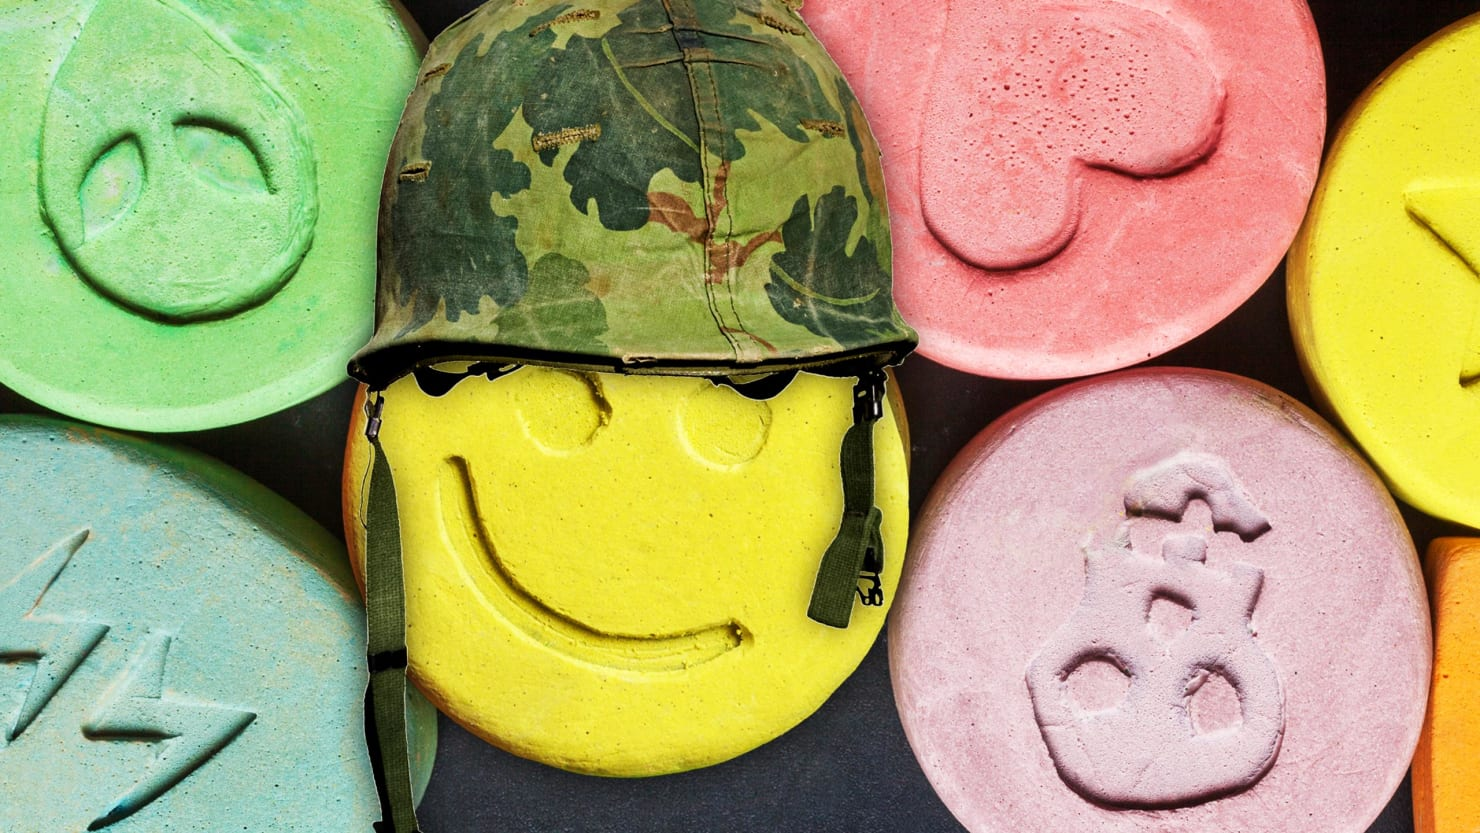 veteran mdma ecstasy ptsd post traumatic posttraumatic stress disorder veteran vet iraq war military maps fda